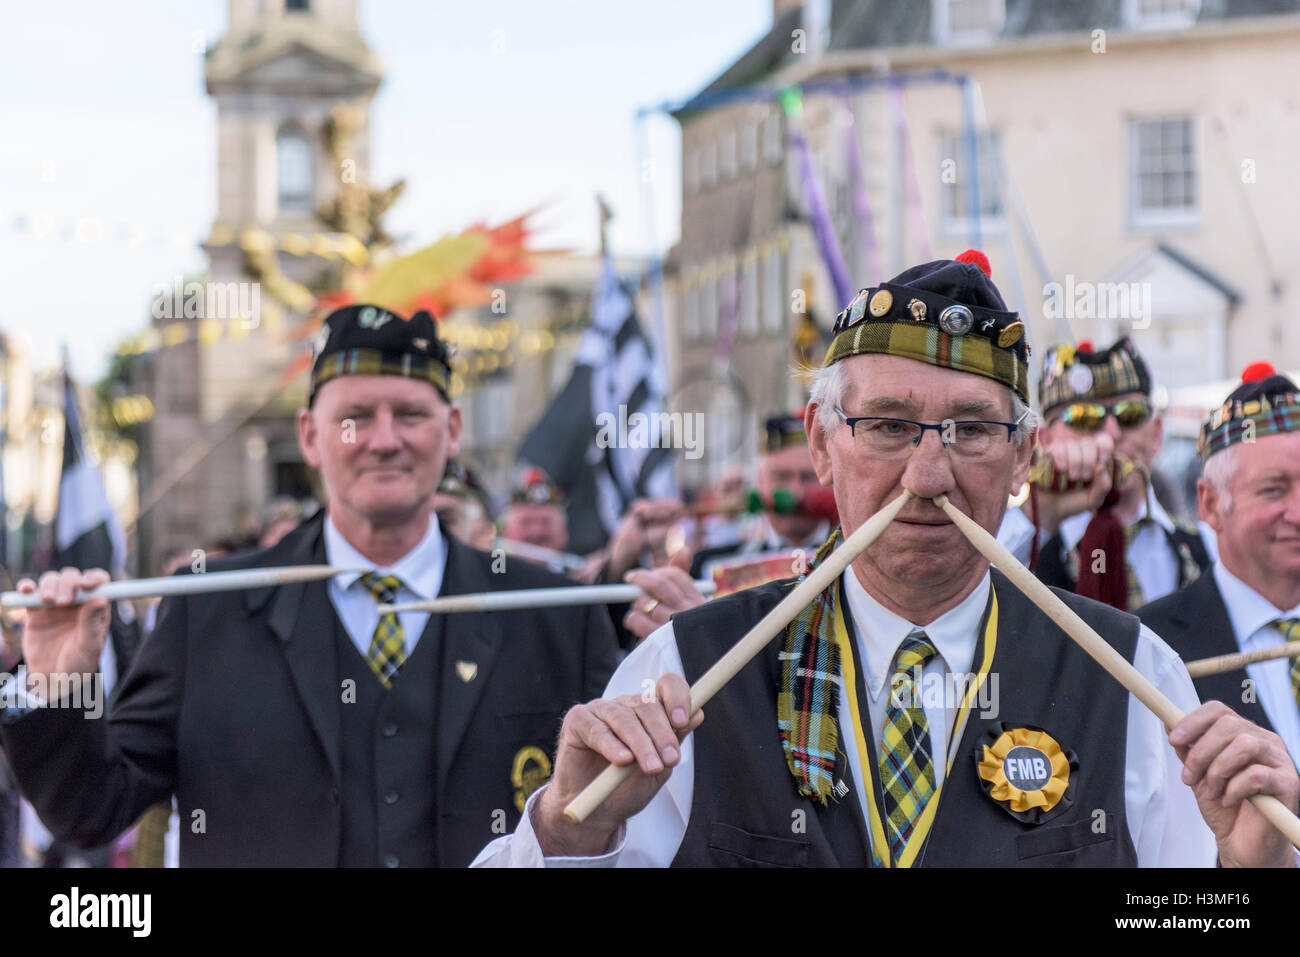 A drummer of the Falmouth Marine Band takes part in the Penryn Festival in Cornwall - Stock Image